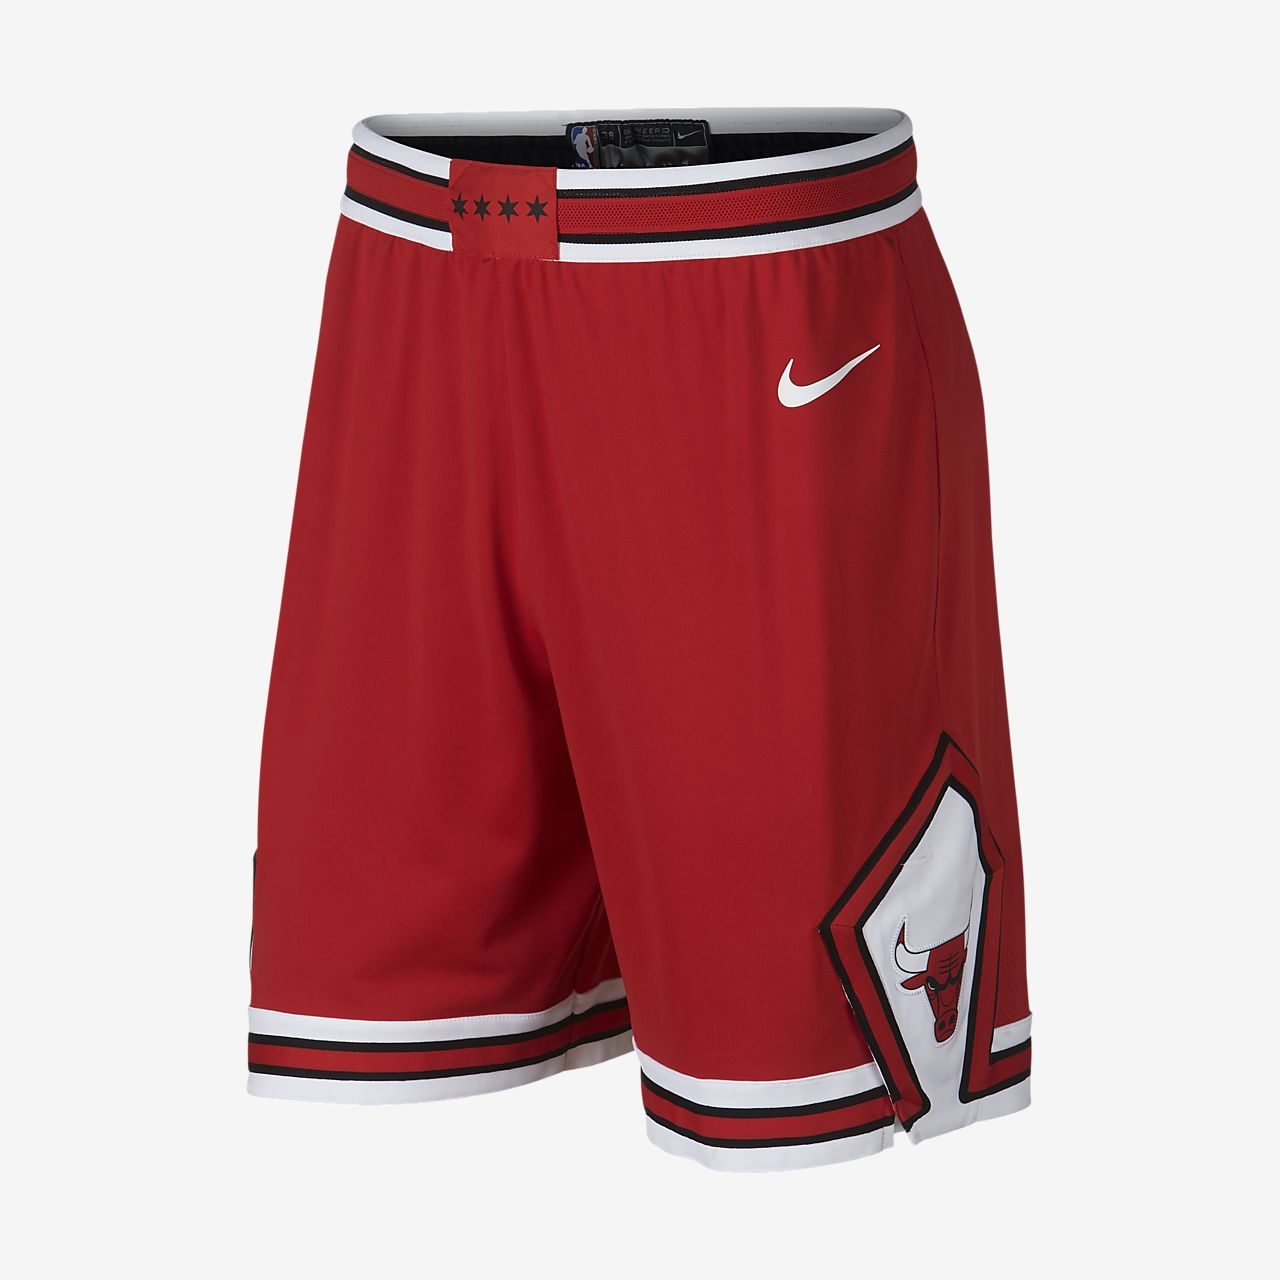 a9c78cdf030 Chicago Bulls Nike Icon Edition Authentic Men s NBA Shorts. Nike.com AU